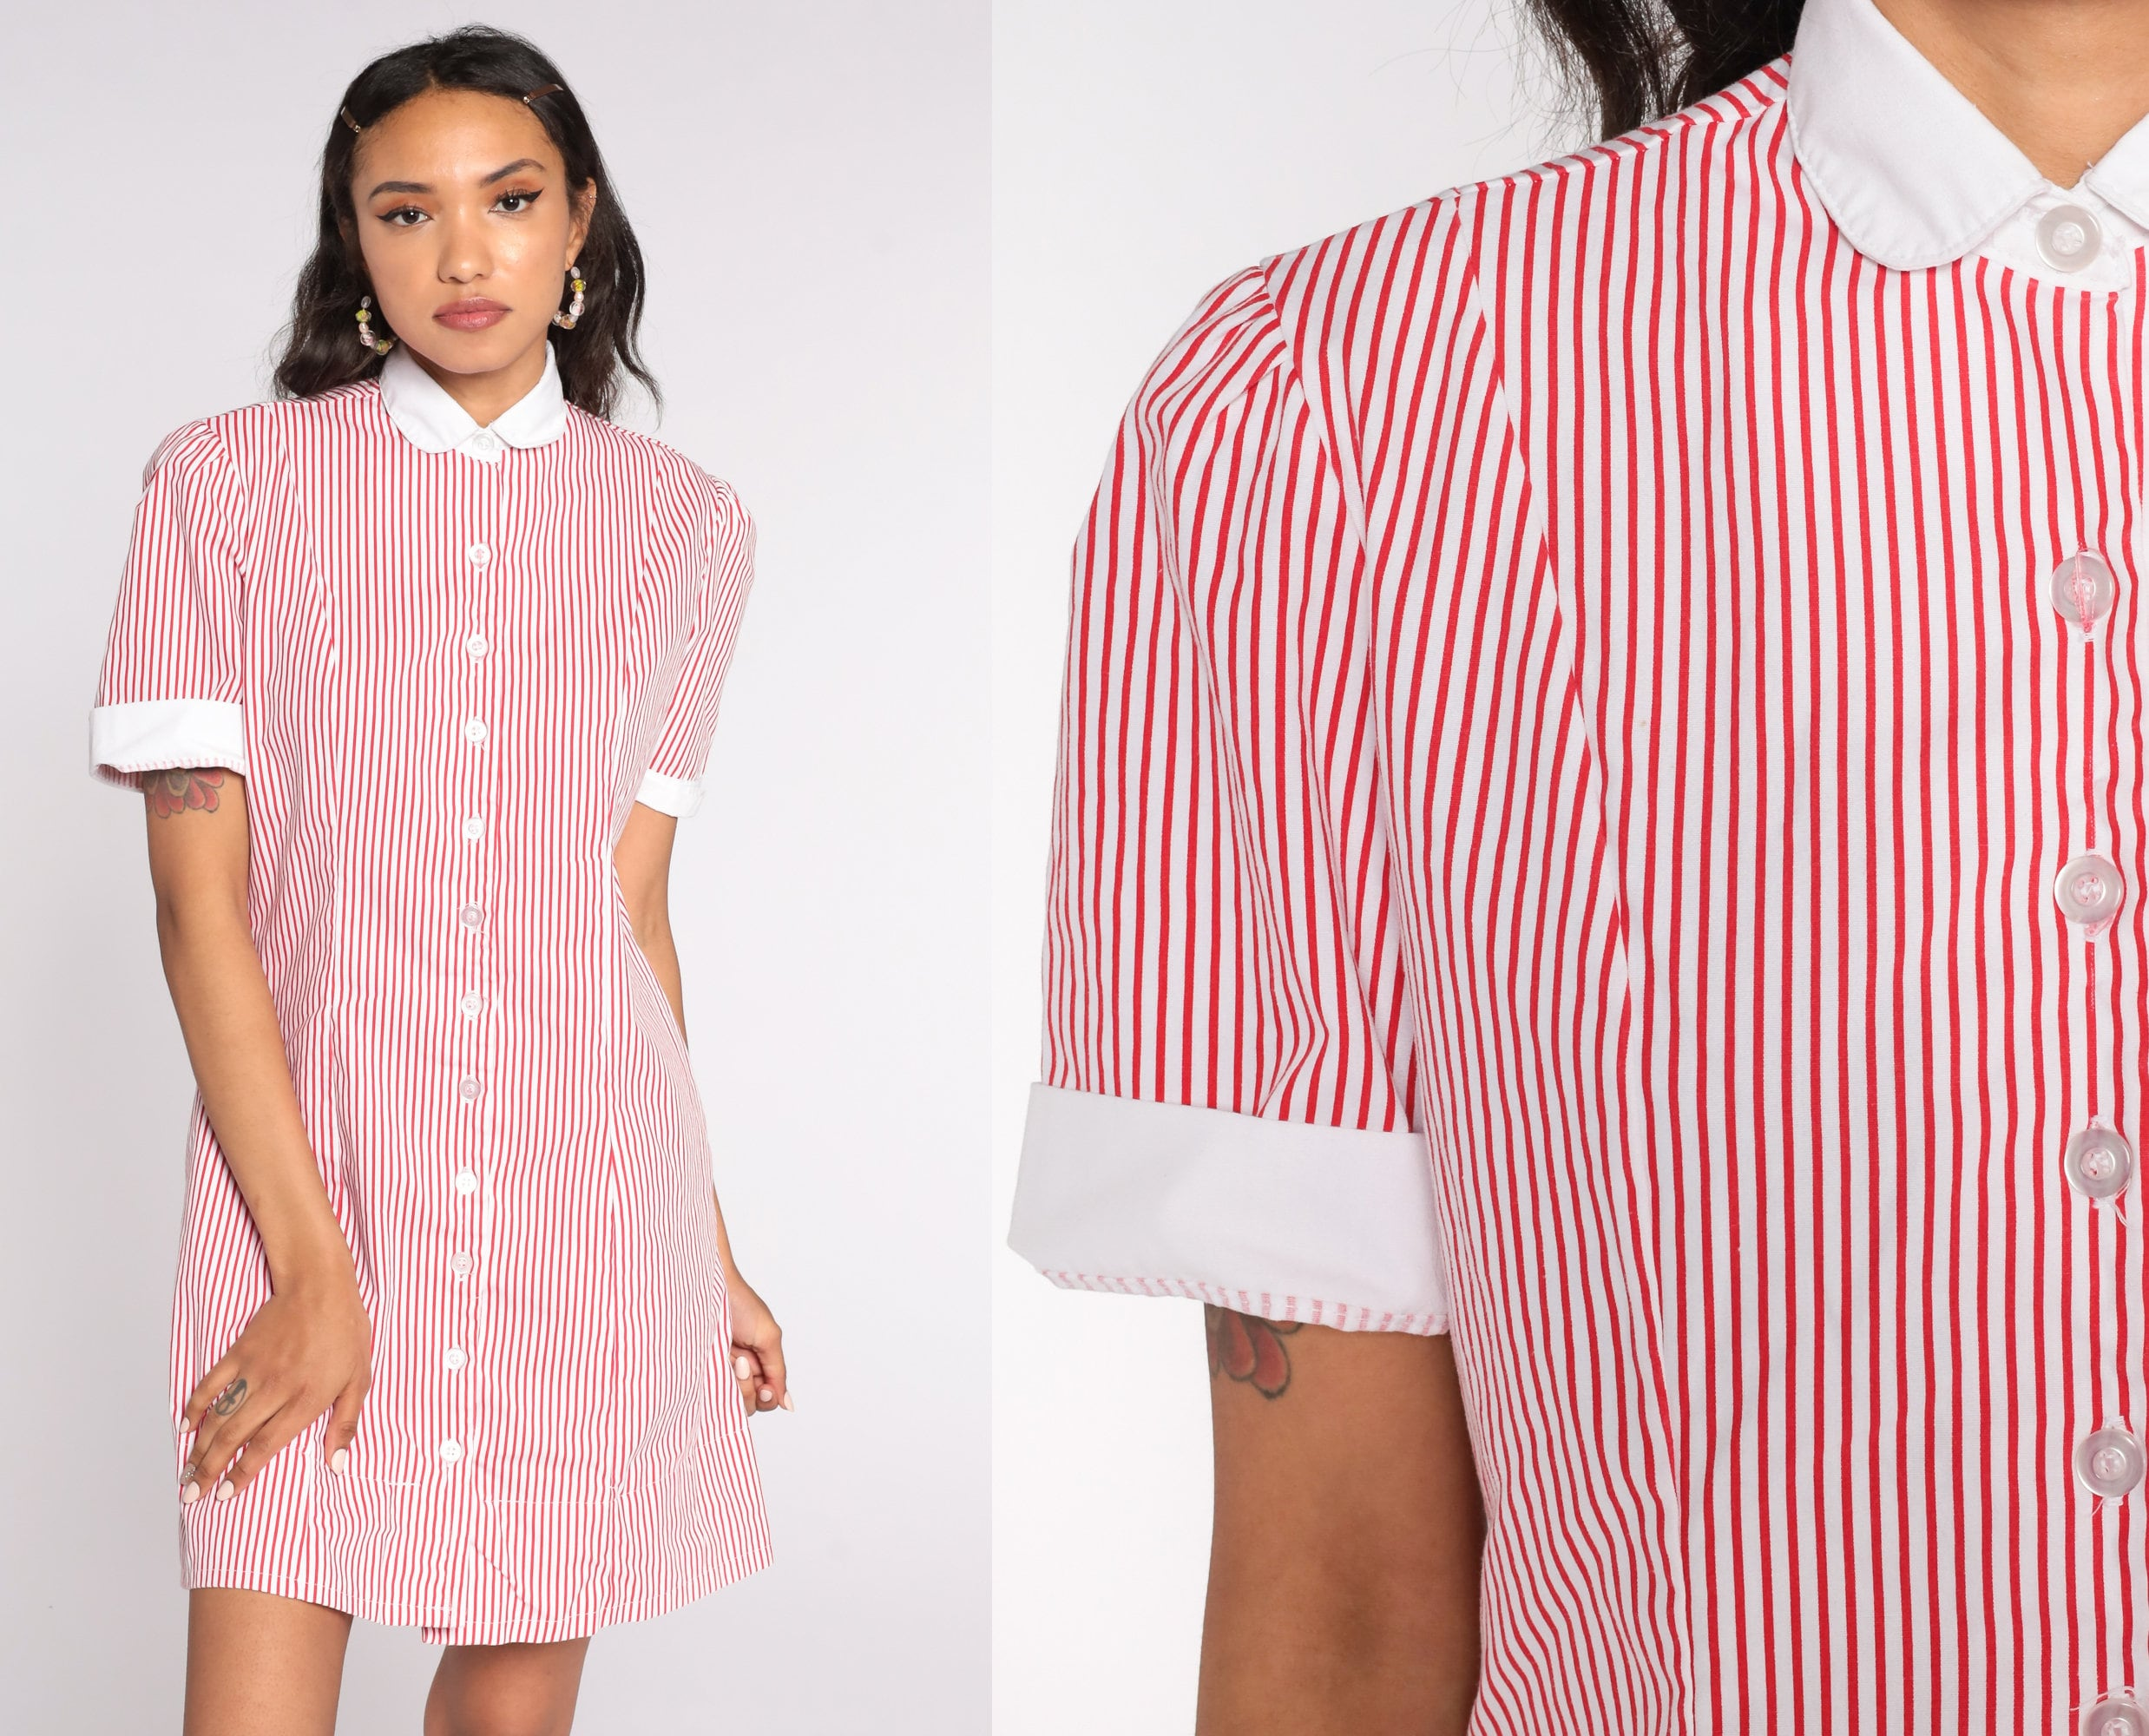 80s Dresses | Casual to Party Dresses Red Striped Dress Candy Striper Uniform Button Up 80S Mini Puff Sleeve Peter Pan Collar 1980S Vintage Shift White Extra Small Xs $65.00 AT vintagedancer.com